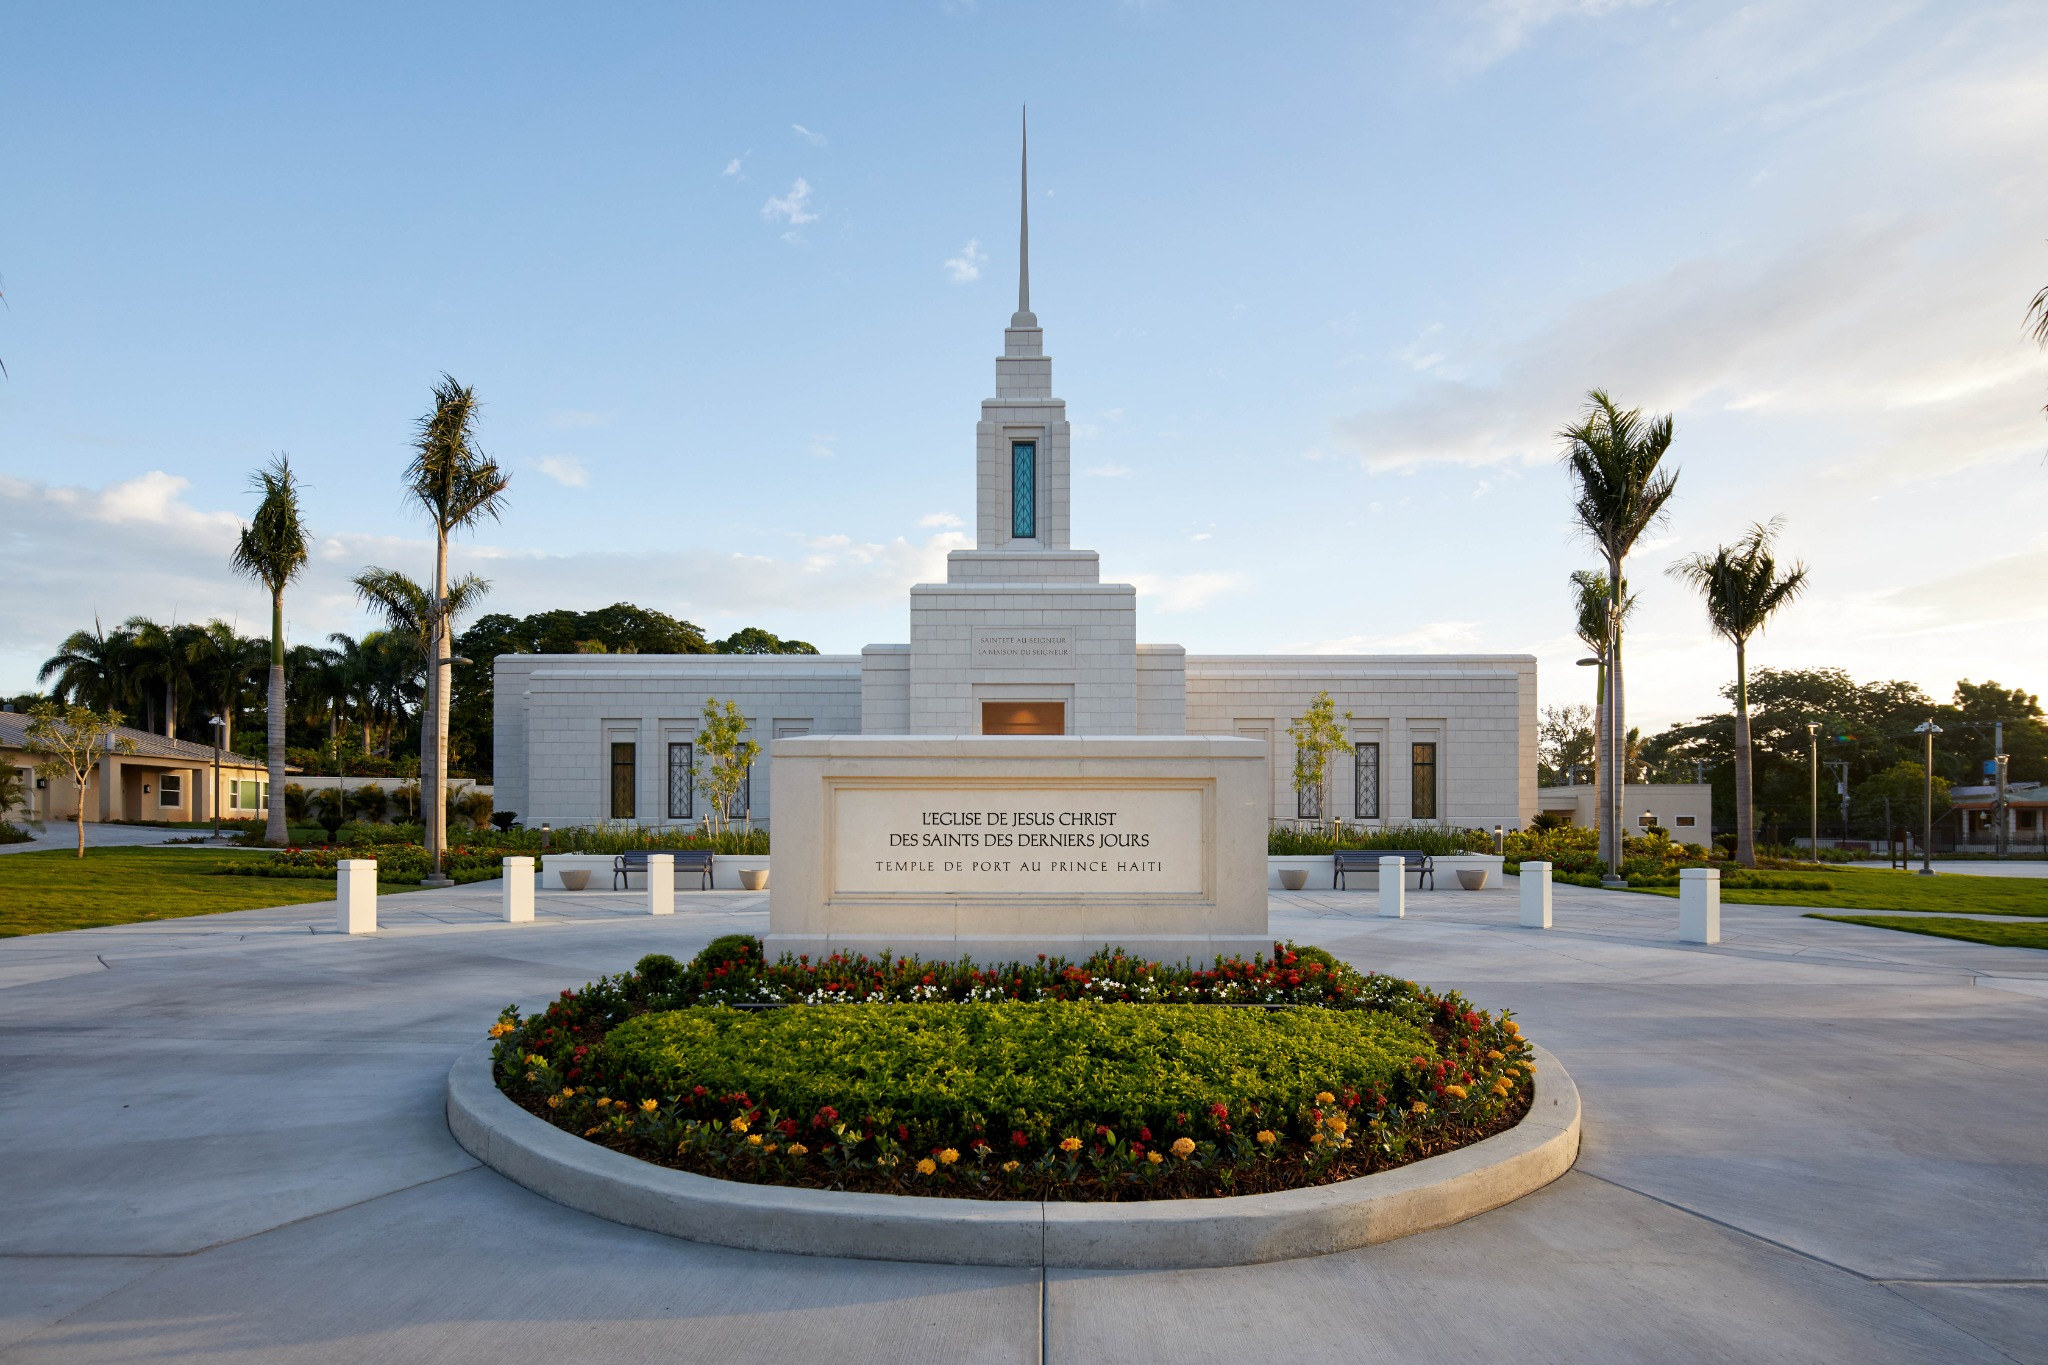 A photo of the exterior of the Port-au-Prince Haiti Temple.